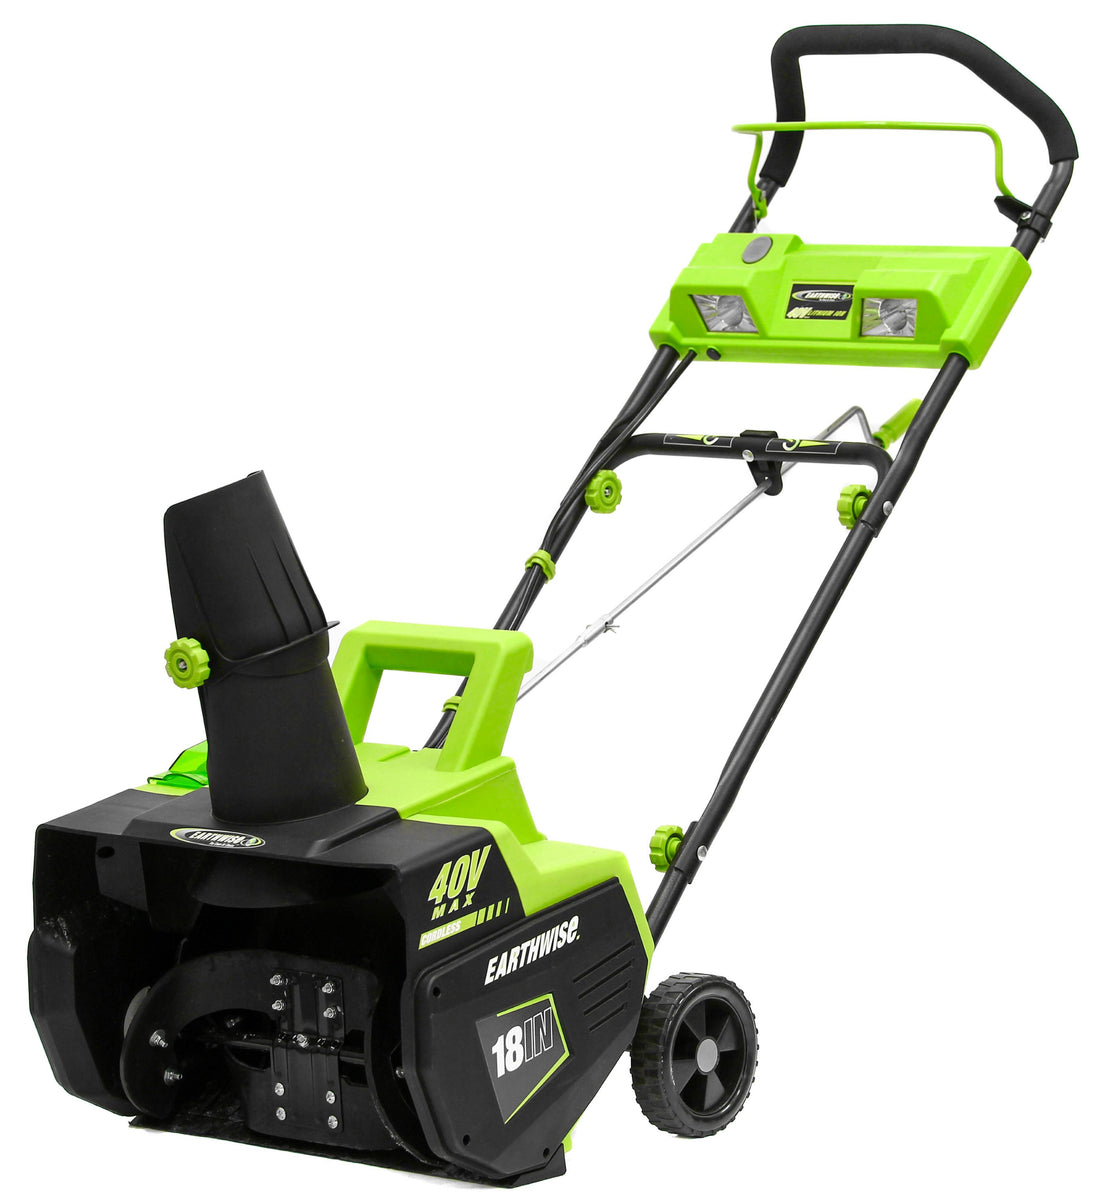 Earthwise 18 Quot 40v 4ah Lithium Snow Thrower American Lawn